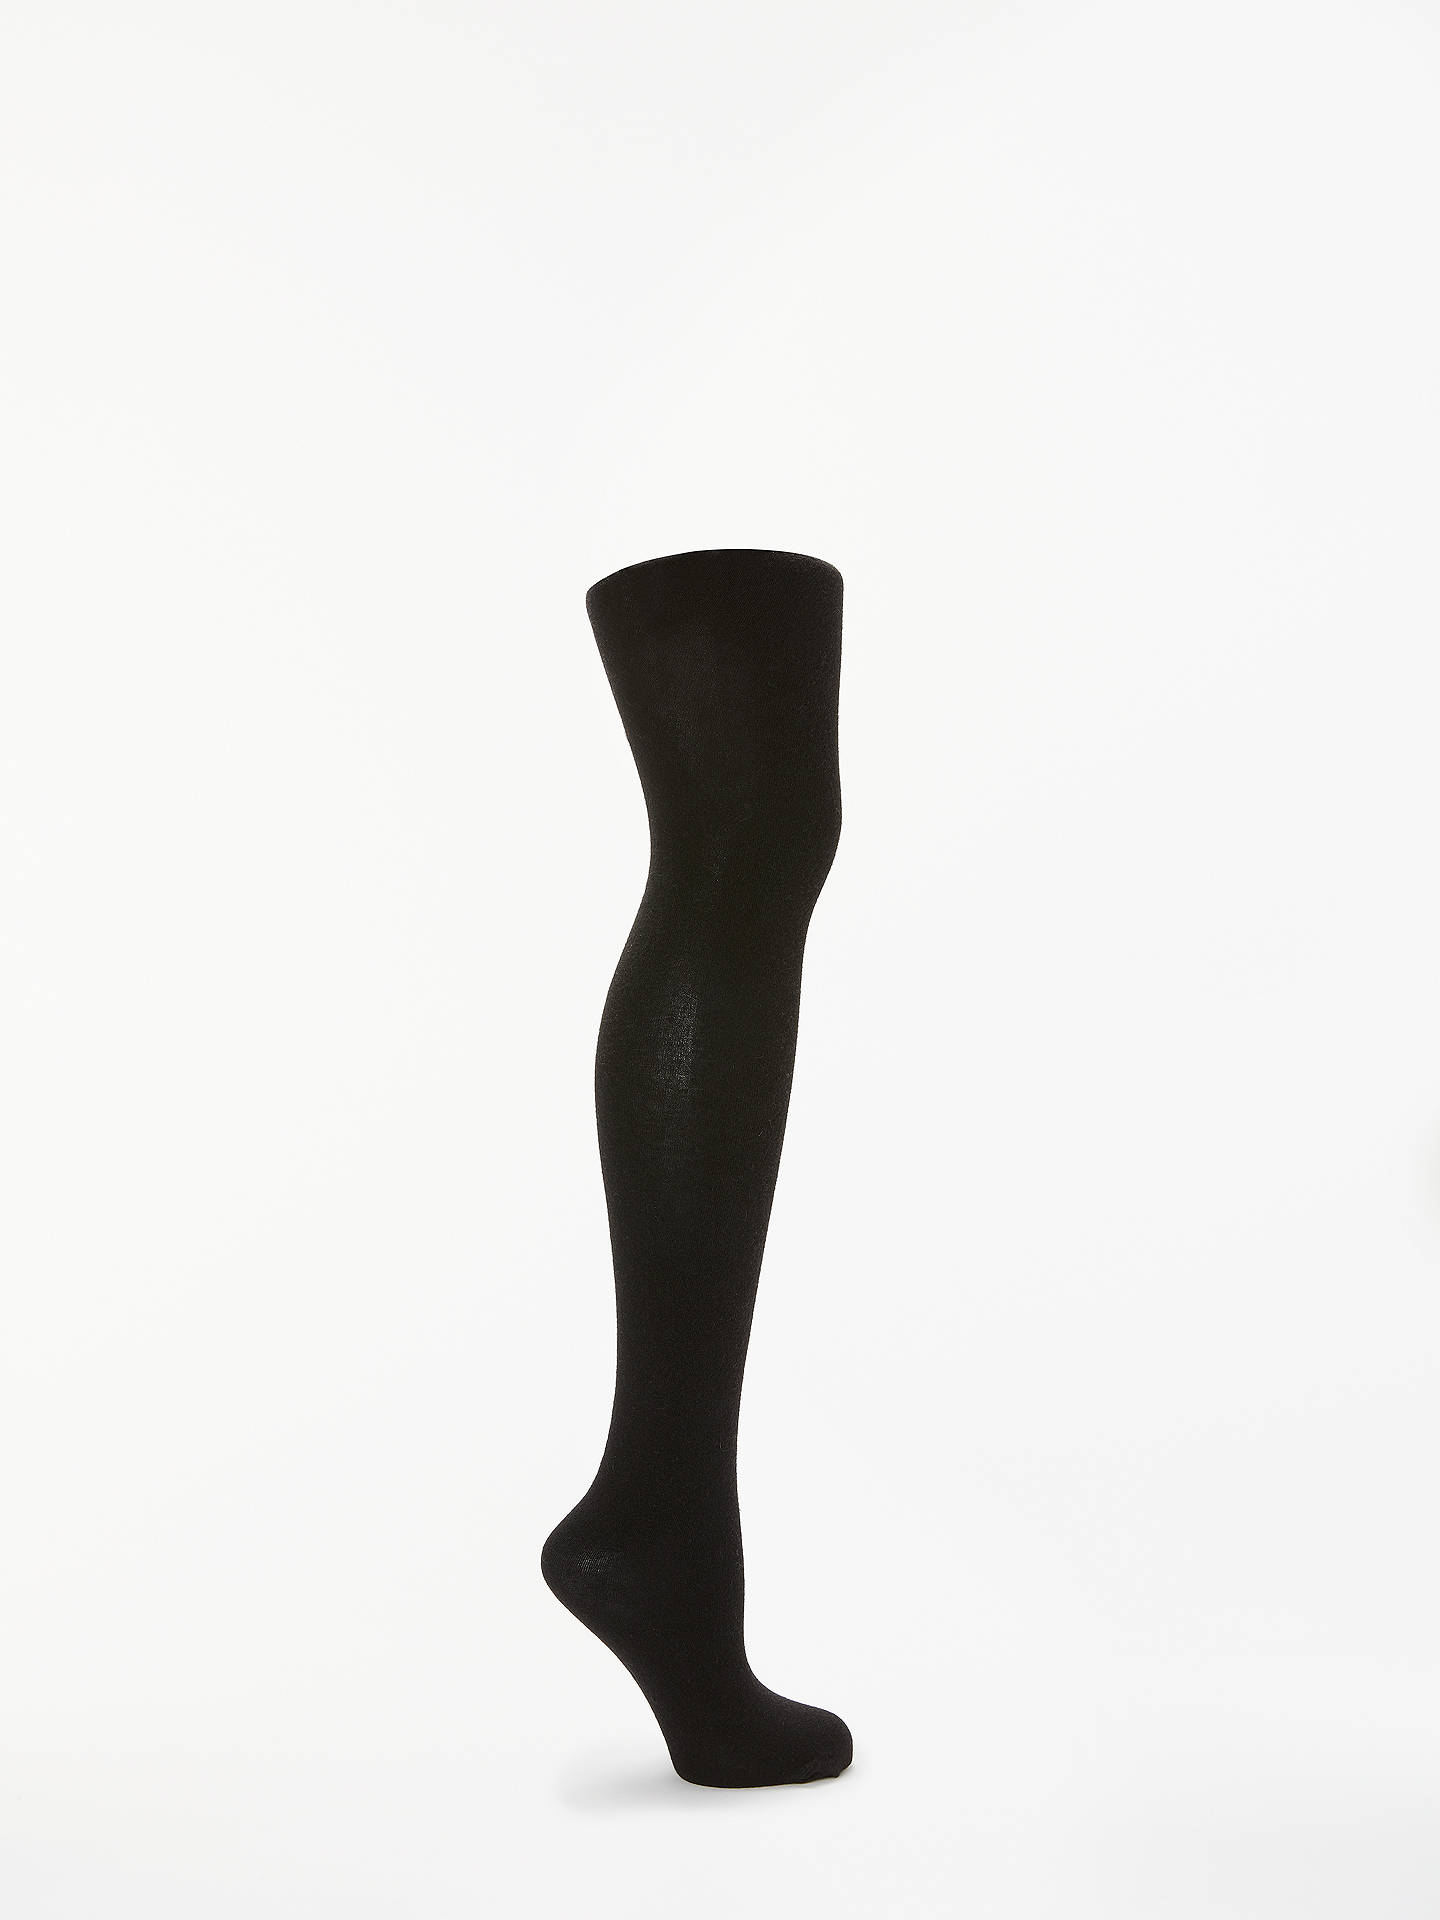 37056fcc1a188 Buy John Lewis & Partners Cashmere Mix Opaque Tights, Black, S Online at  johnlewis ...